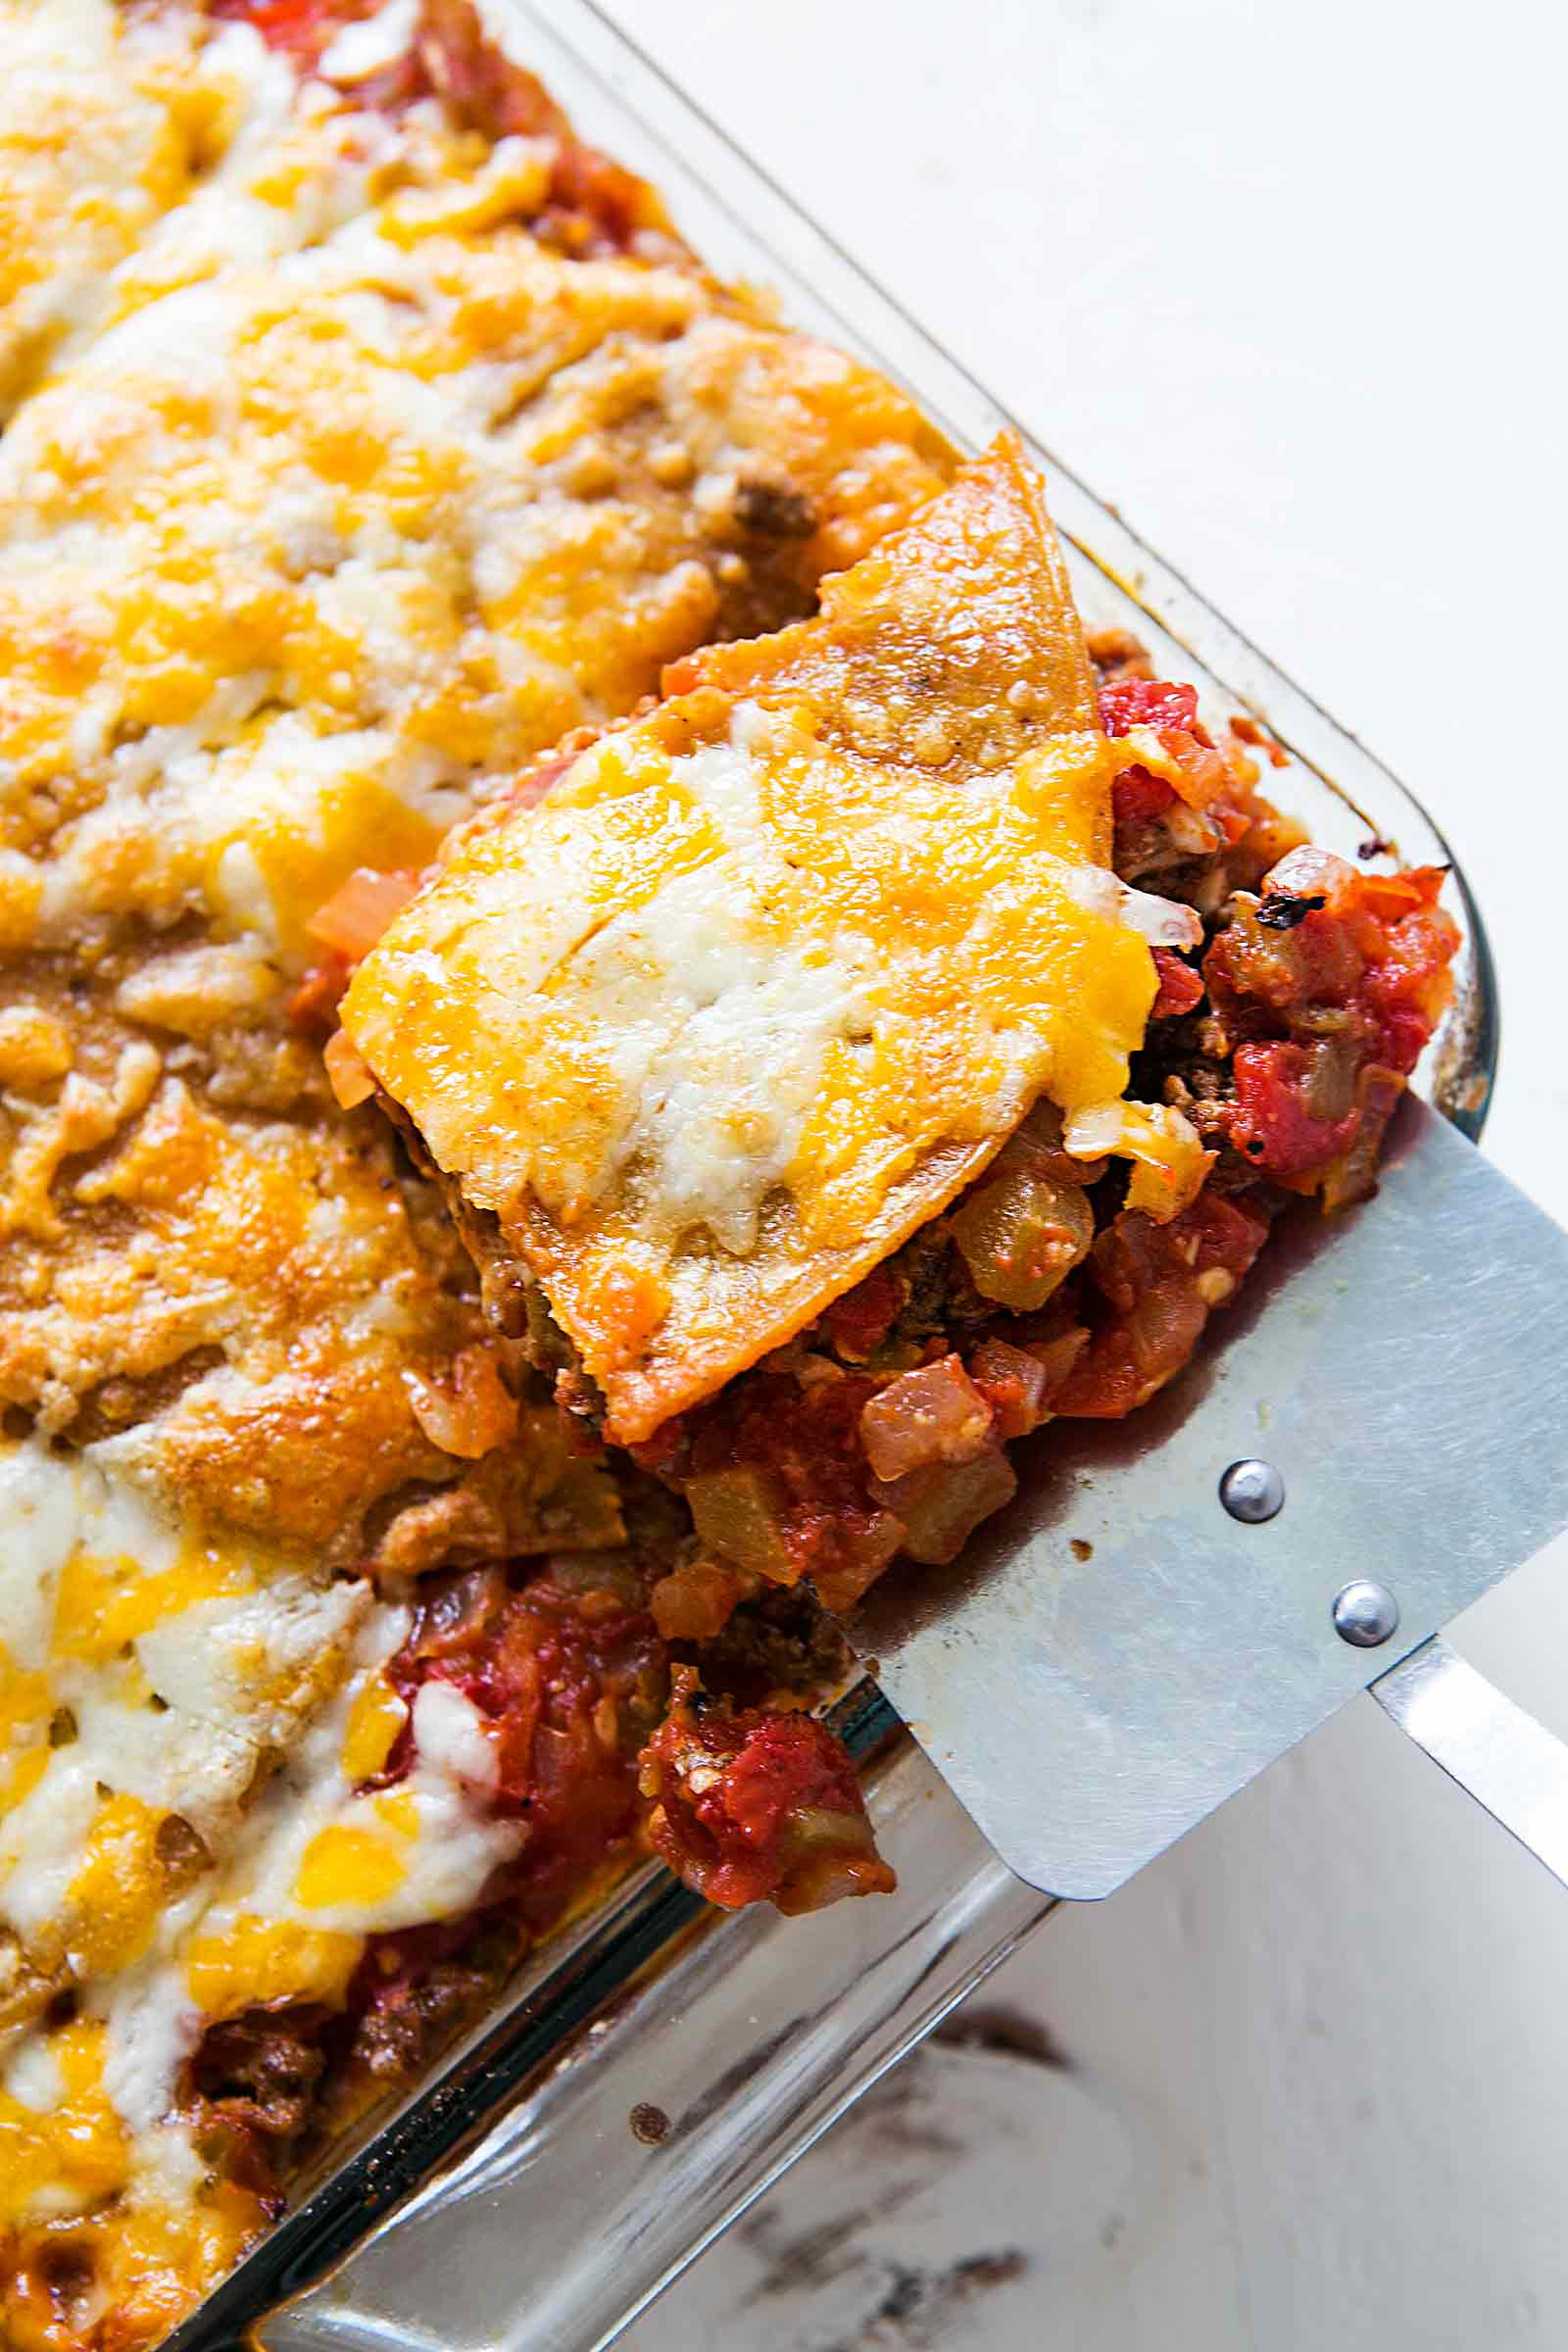 Sliced taco lasagna made with tortillas, beans, beef, tomatoes, and cheese in a baking dish